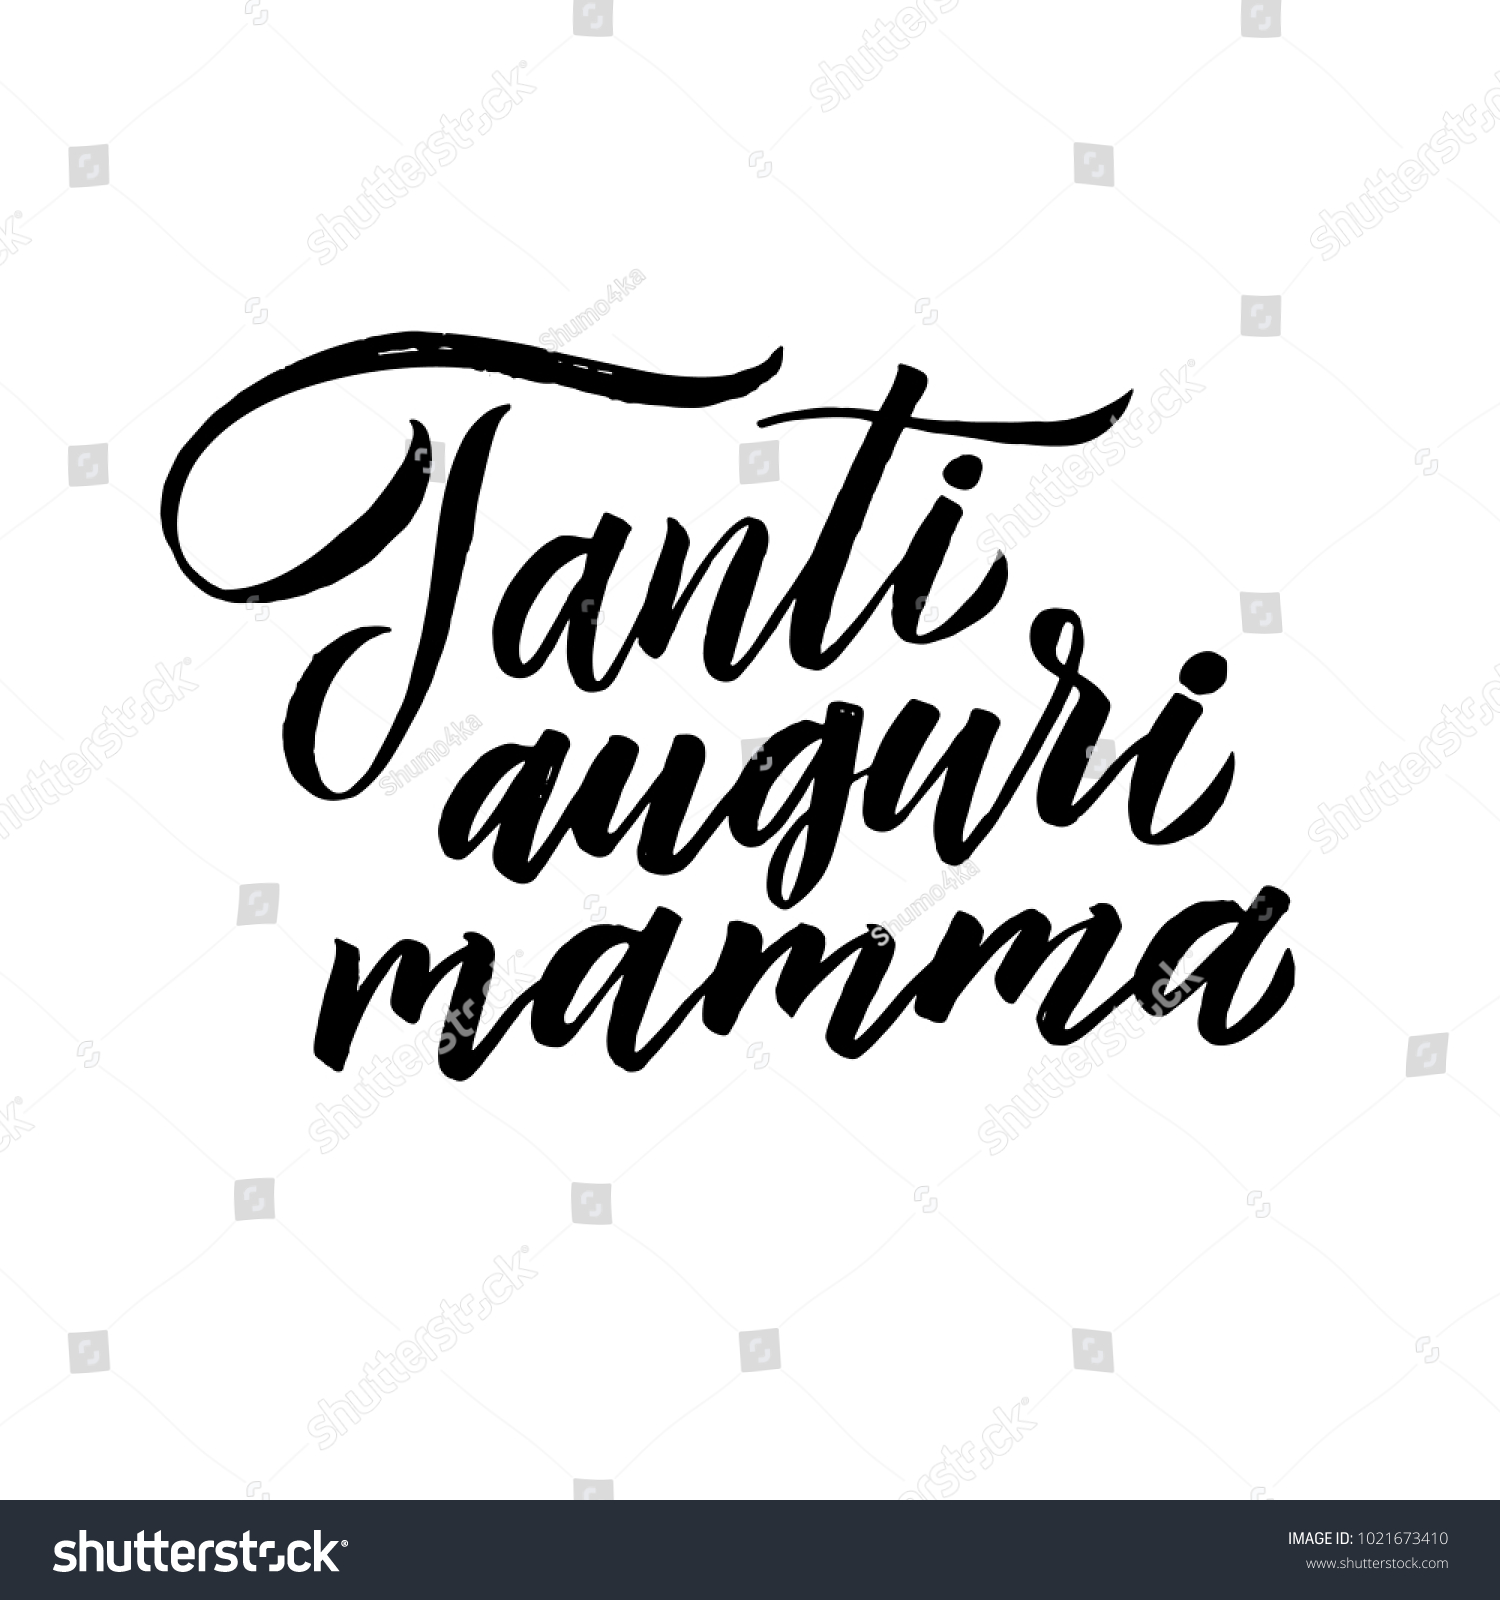 Happy birthday mom italian language greeting stock vector 1021673410 italian language greeting card black hand calligraphy inscription lettering illustration kristyandbryce Images